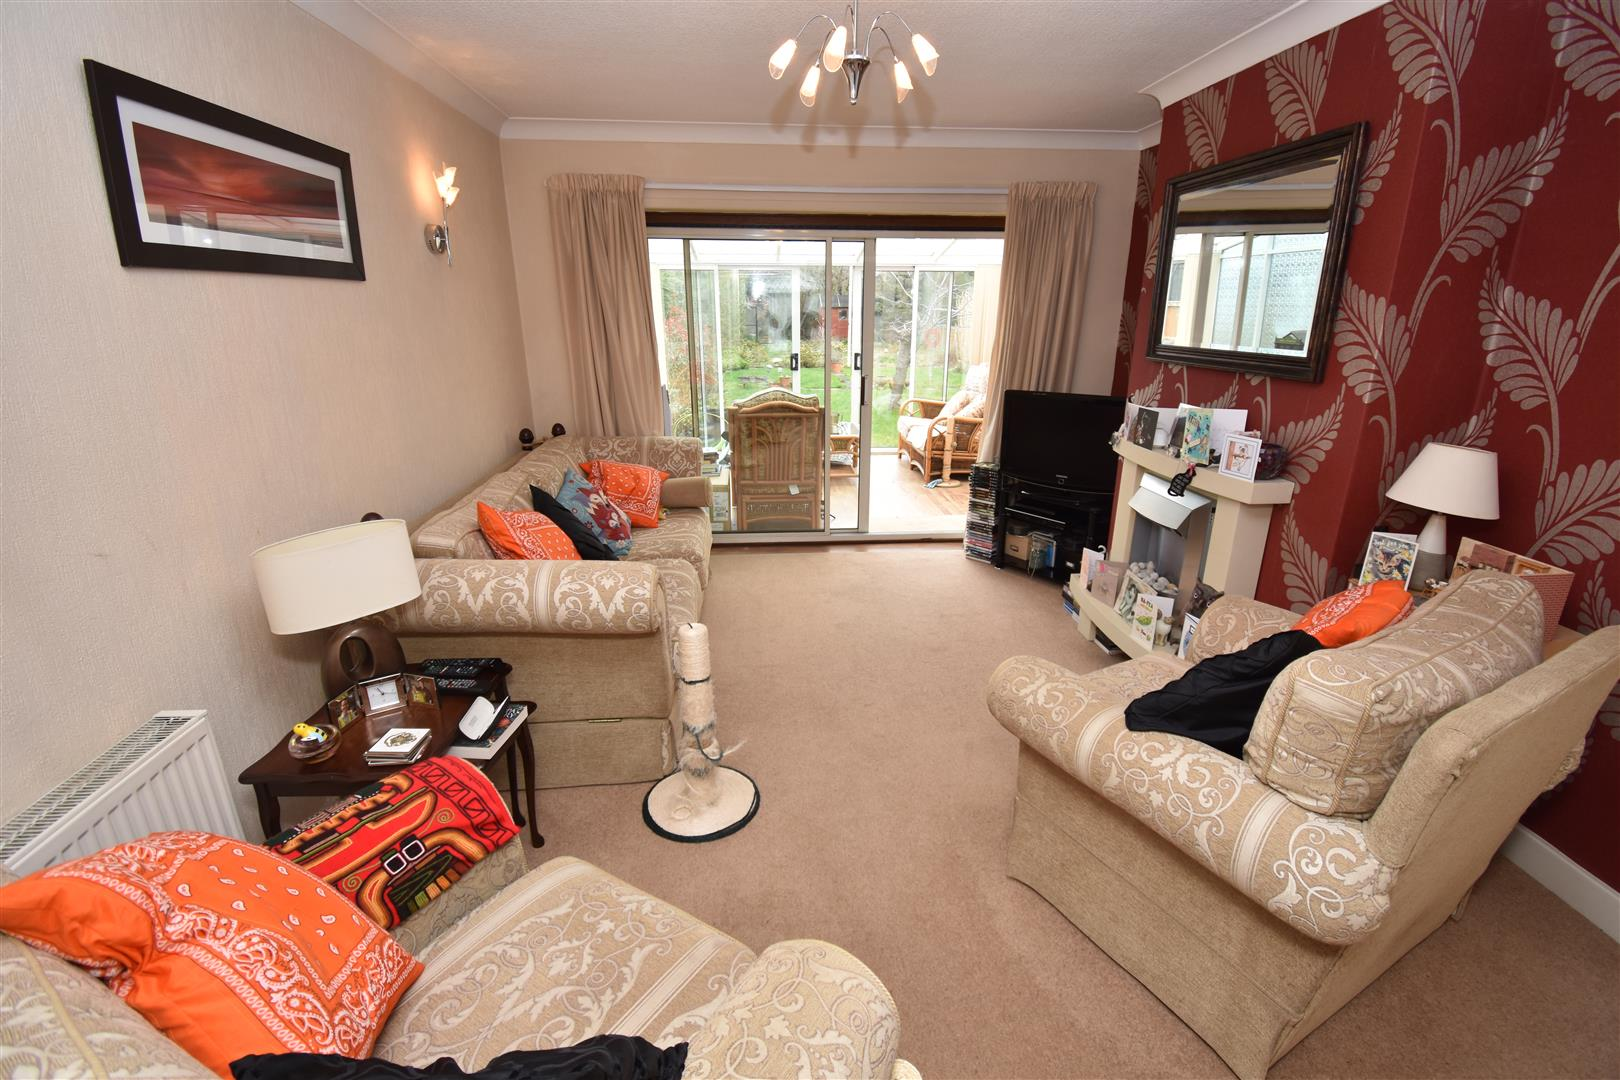 3 bed house for sale in Coleshill Road, Birmingham, B36